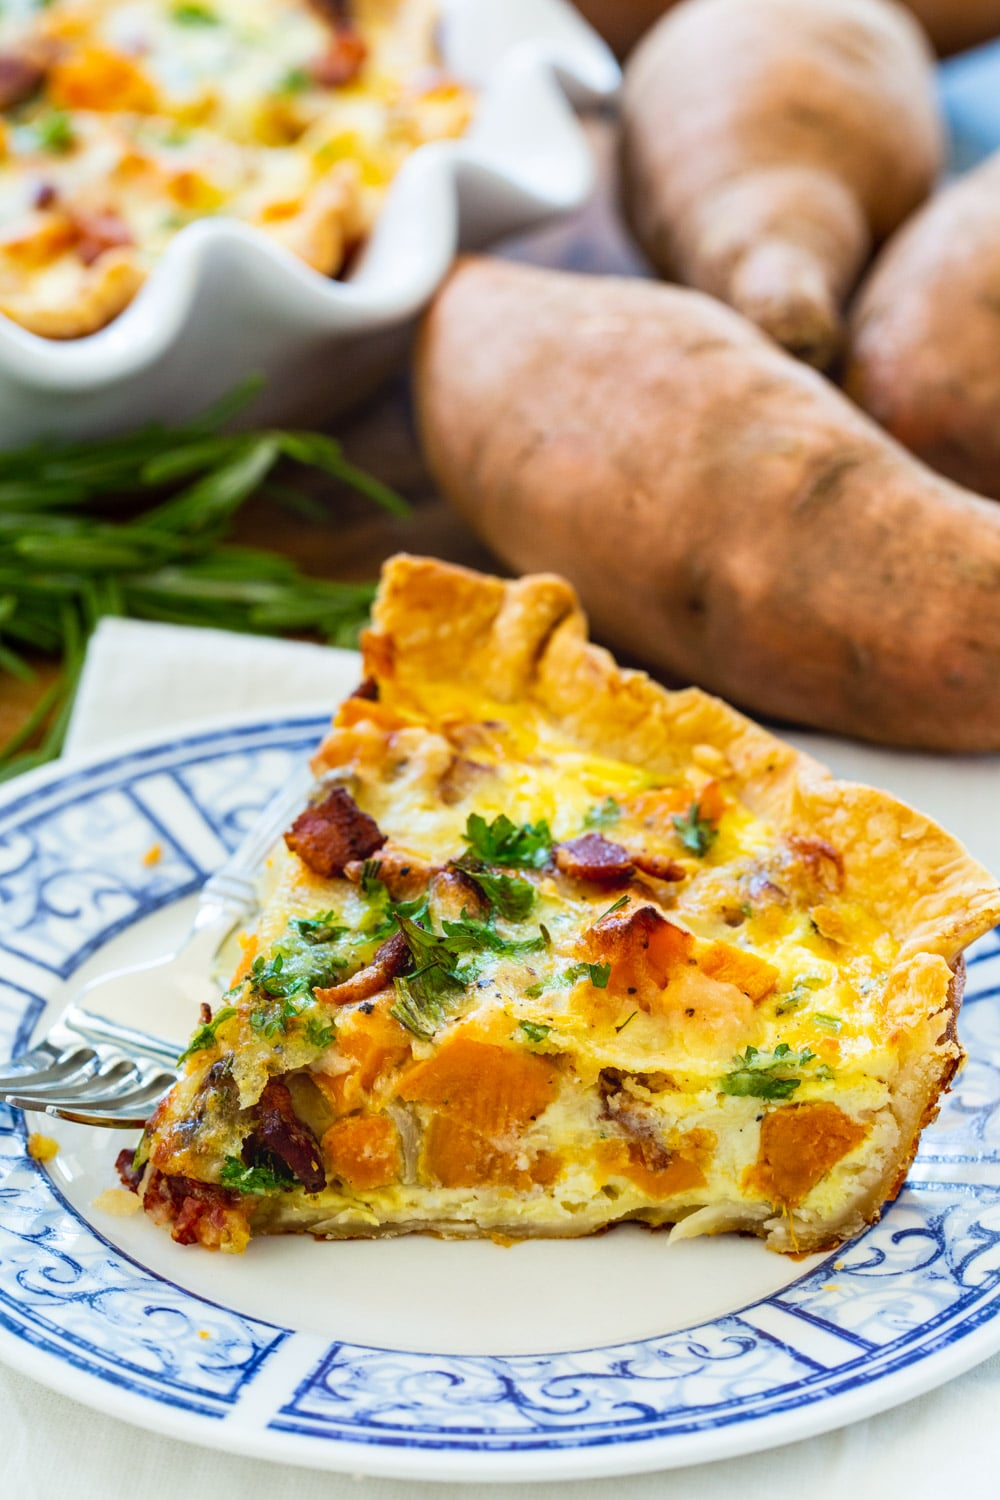 Slice of quiche with roasted sweet potatoes on blue and white plate.